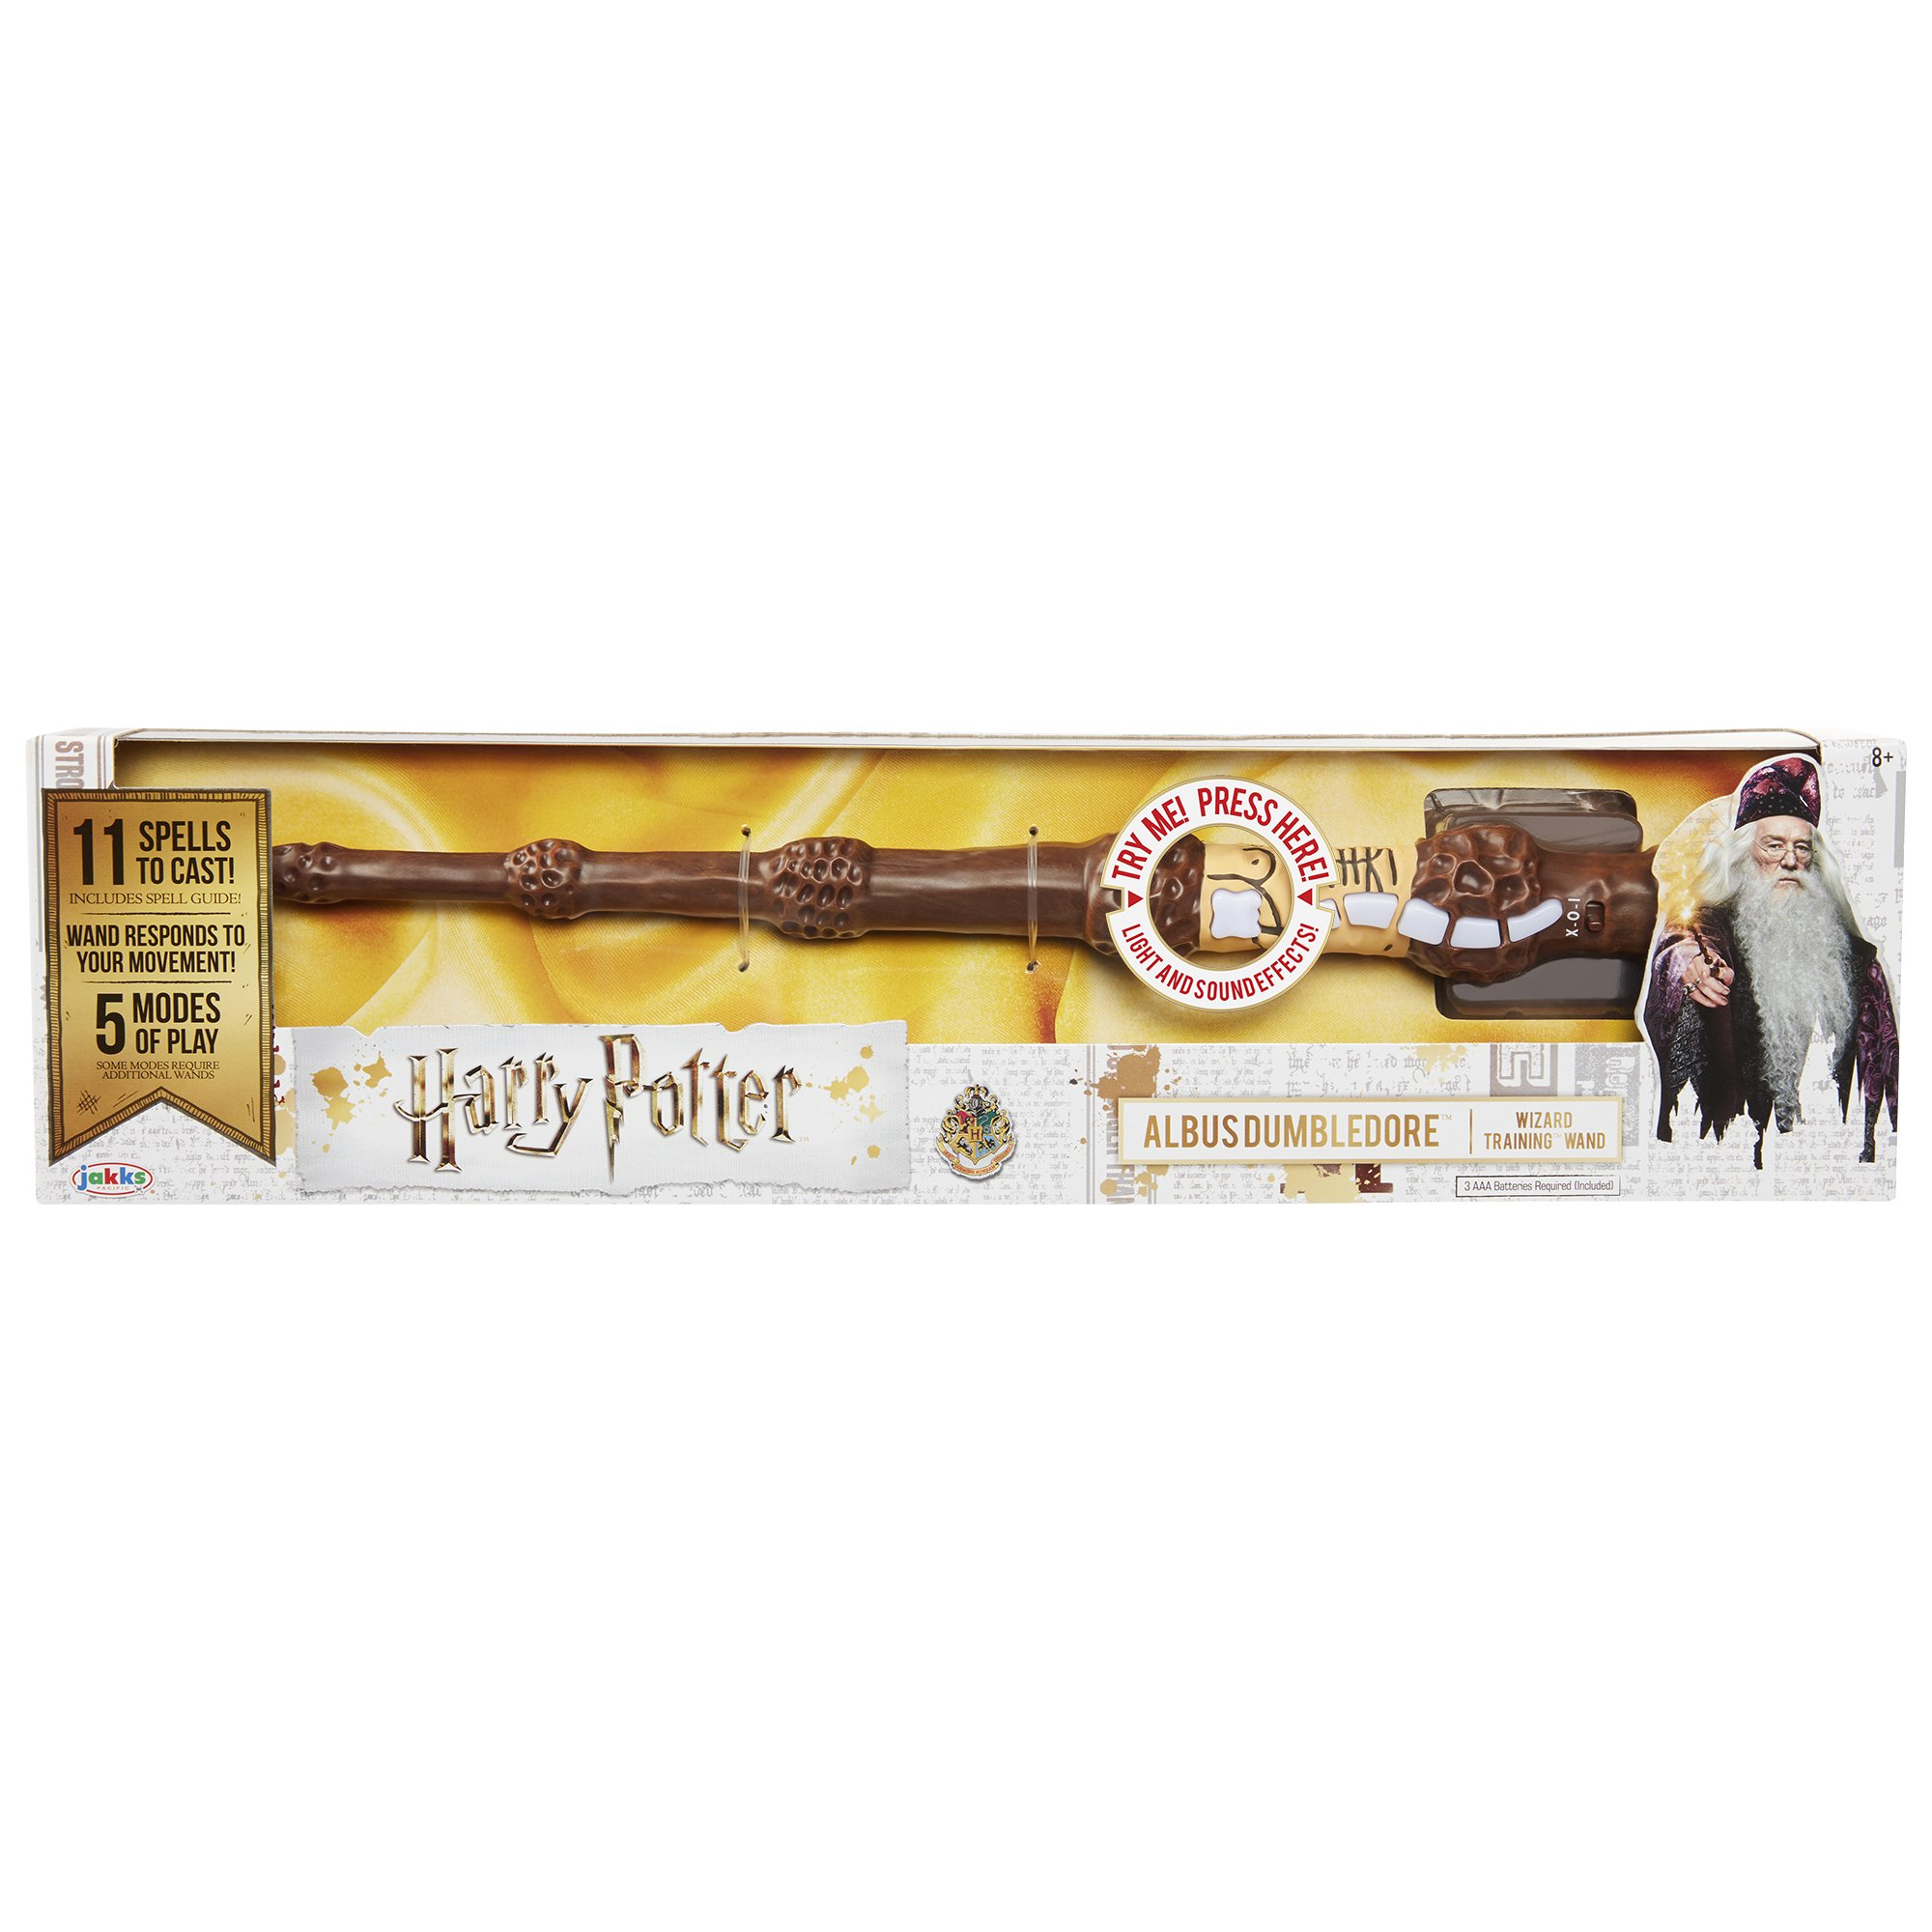 Harry Potter, Albus Dumbledore's Wizard Training Wand - 11 Spells to CAST!